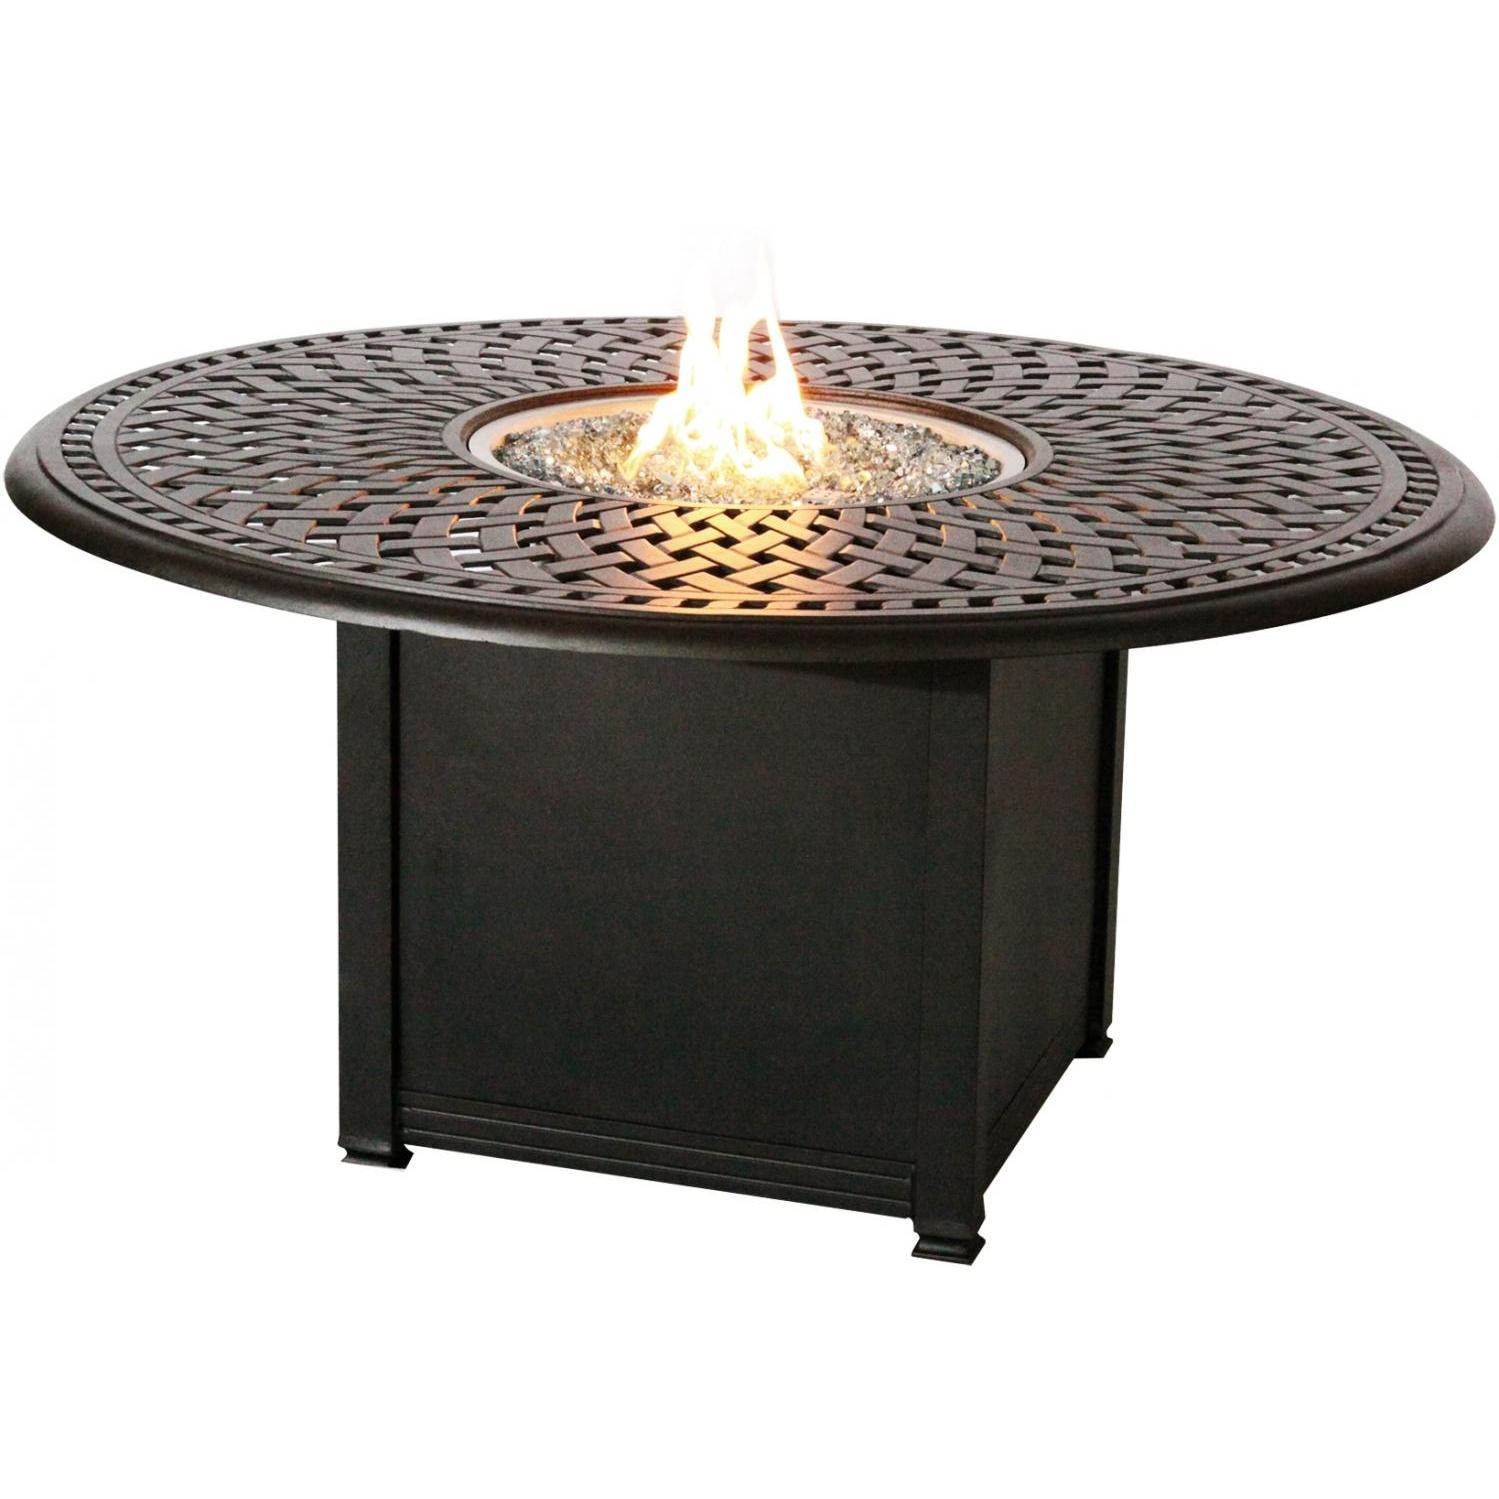 Signature 60 Inch Propane Fire Pit Dining Table By Darlee Antique Bronze Propane Fire Pit Table Fire Pit Table Propane Fire Pit